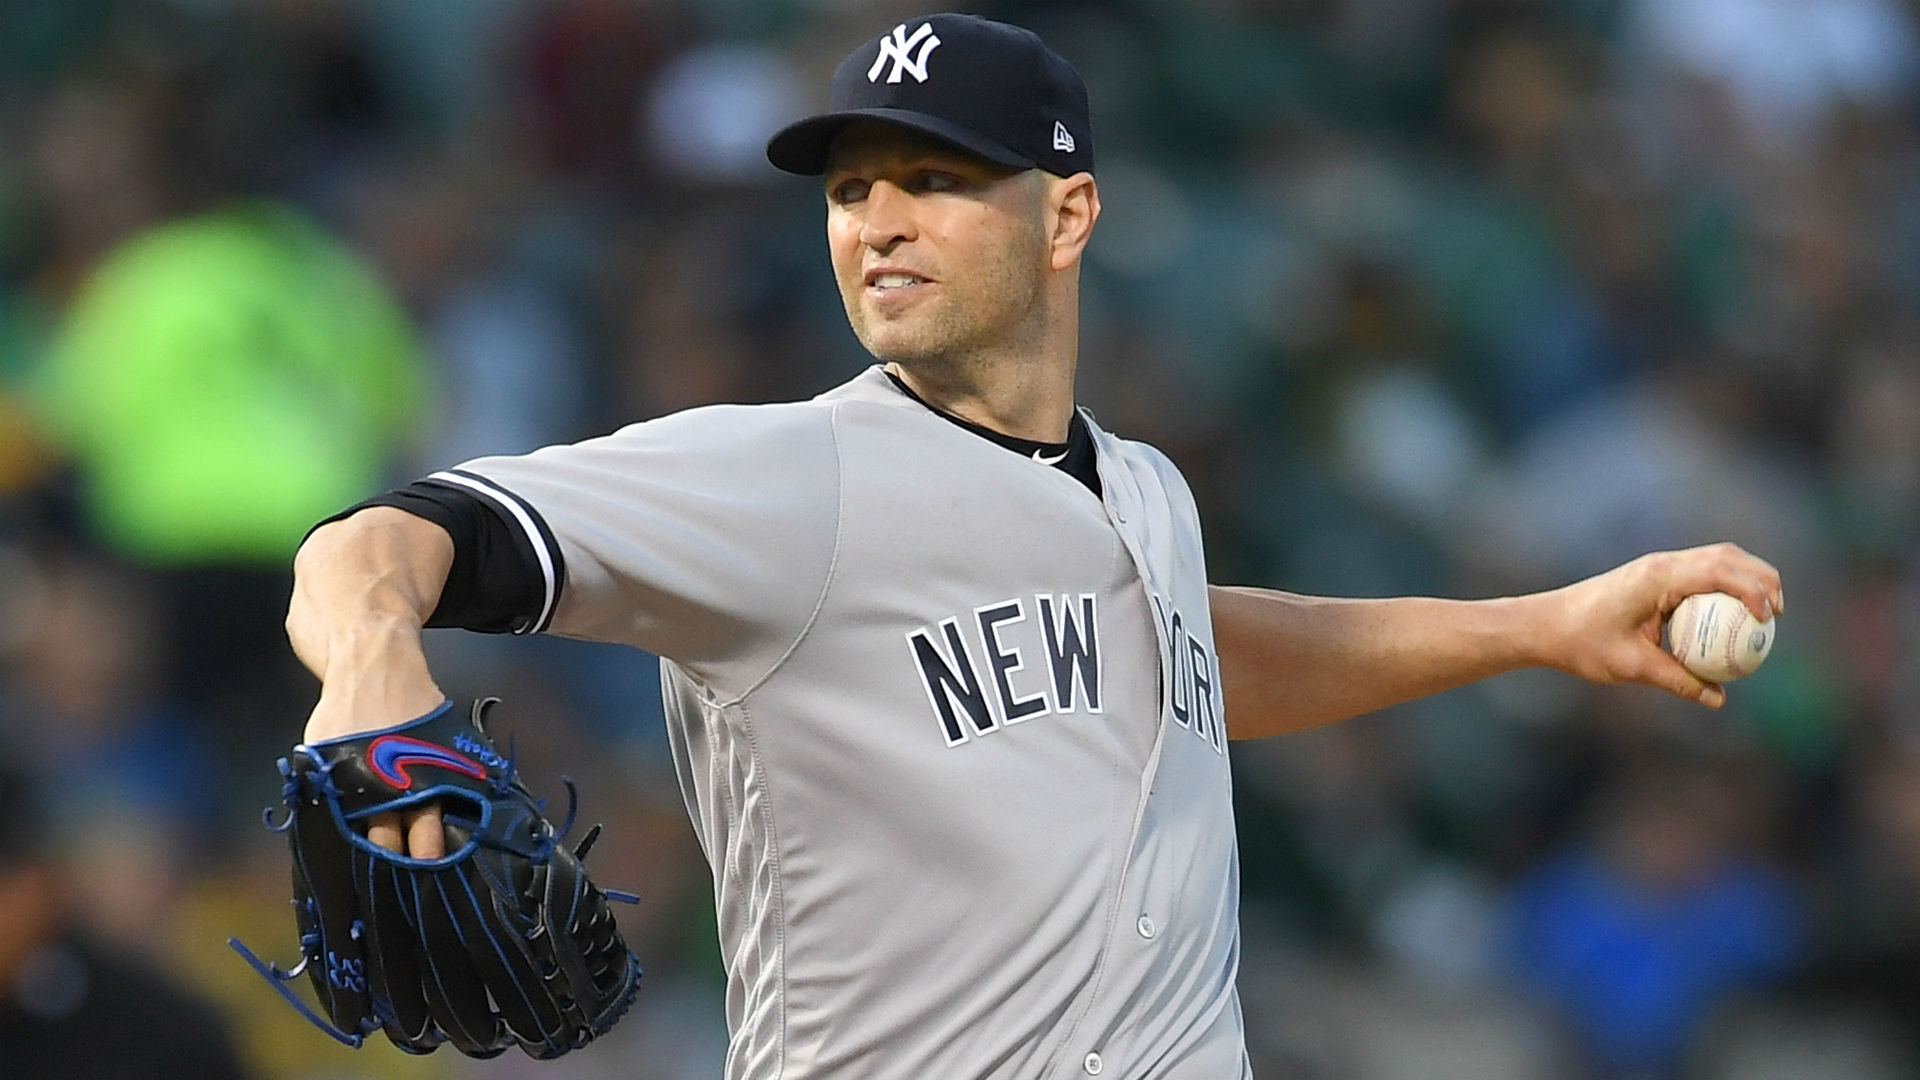 The New York Yankees are nearing a deal with J.A. Happ